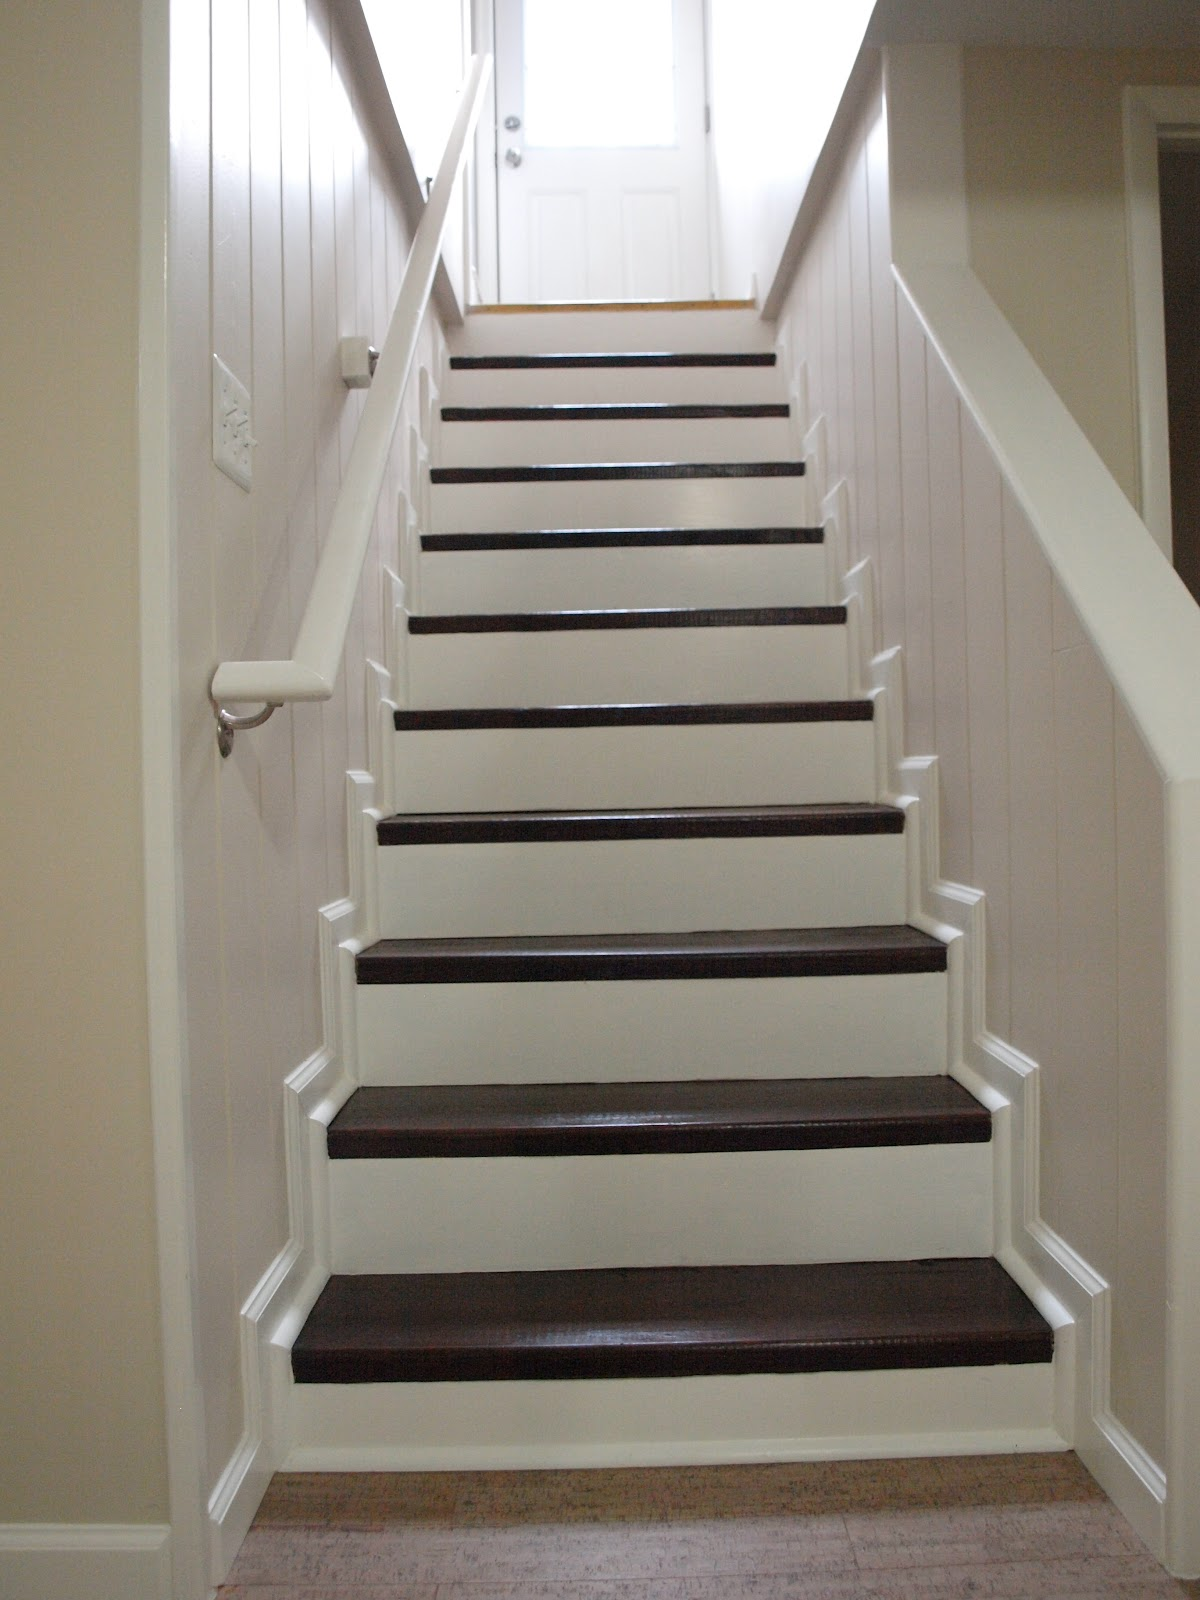 More Green For Less Green: Tackling the Ugliest Stairs in ...